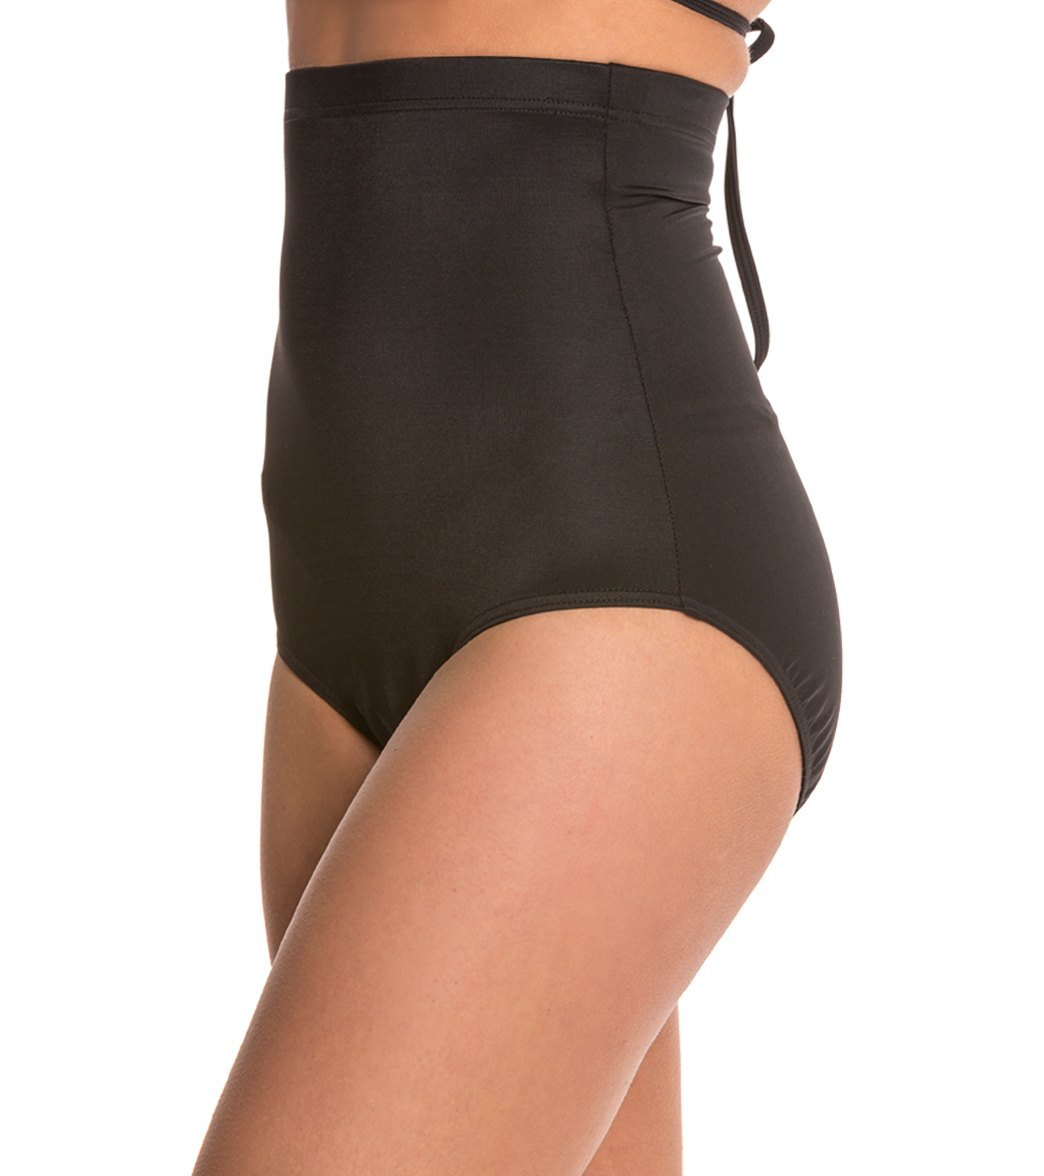 367650a0a7 Magicsuit by Miraclesuit Solid High Waisted Bikini Bottom at ...